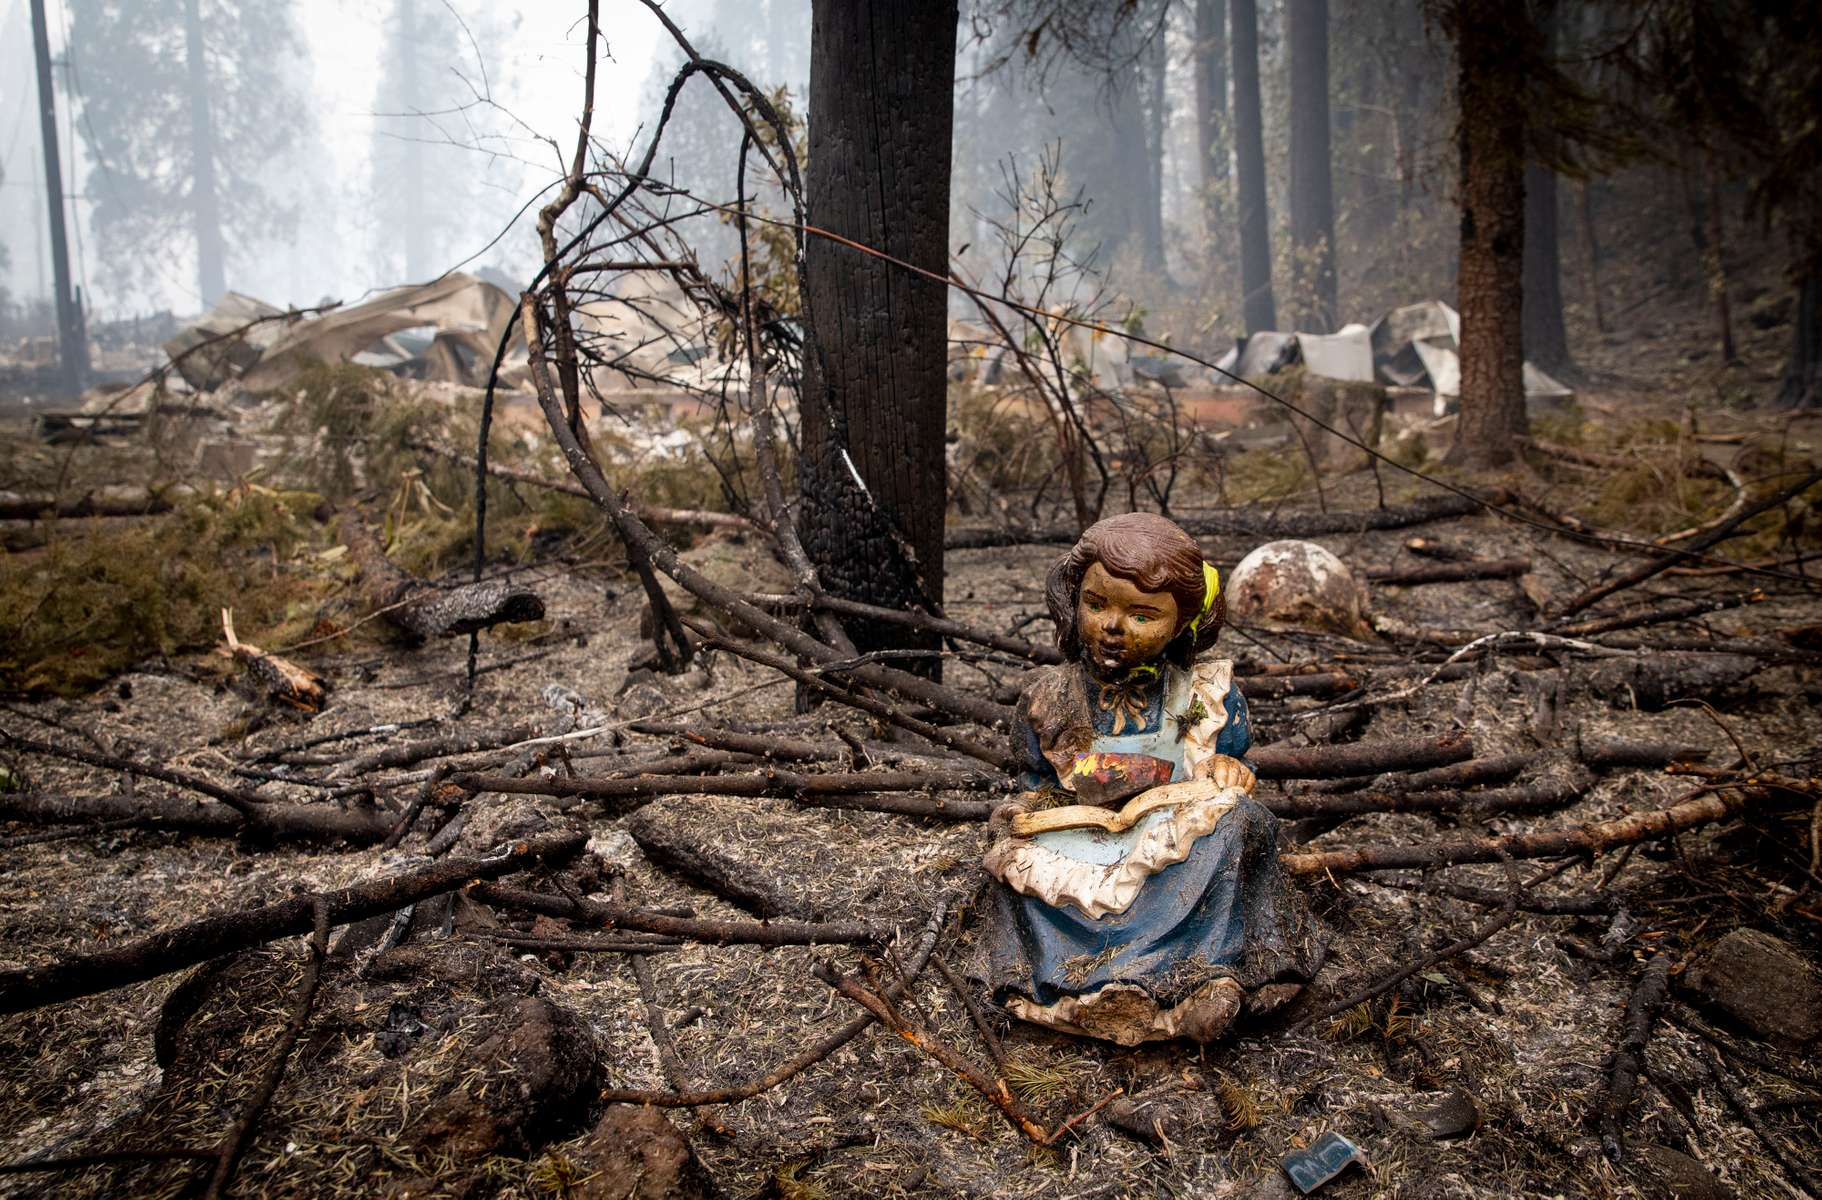 September 15, 2020: A statue of a girl reading sits Sept. 15, 2020, in Blue River, Oregon near where the library stood before it was destroyed in the Holiday Farm Fire. It has been eight days since the fire started near the small community on the McKenzie River. More than 300 structures have been confirmed destroyed in the fire.  Mandatory Credit: Pool photo/Andy Nelson/The Register-Guard via USA TODAY NETWORK